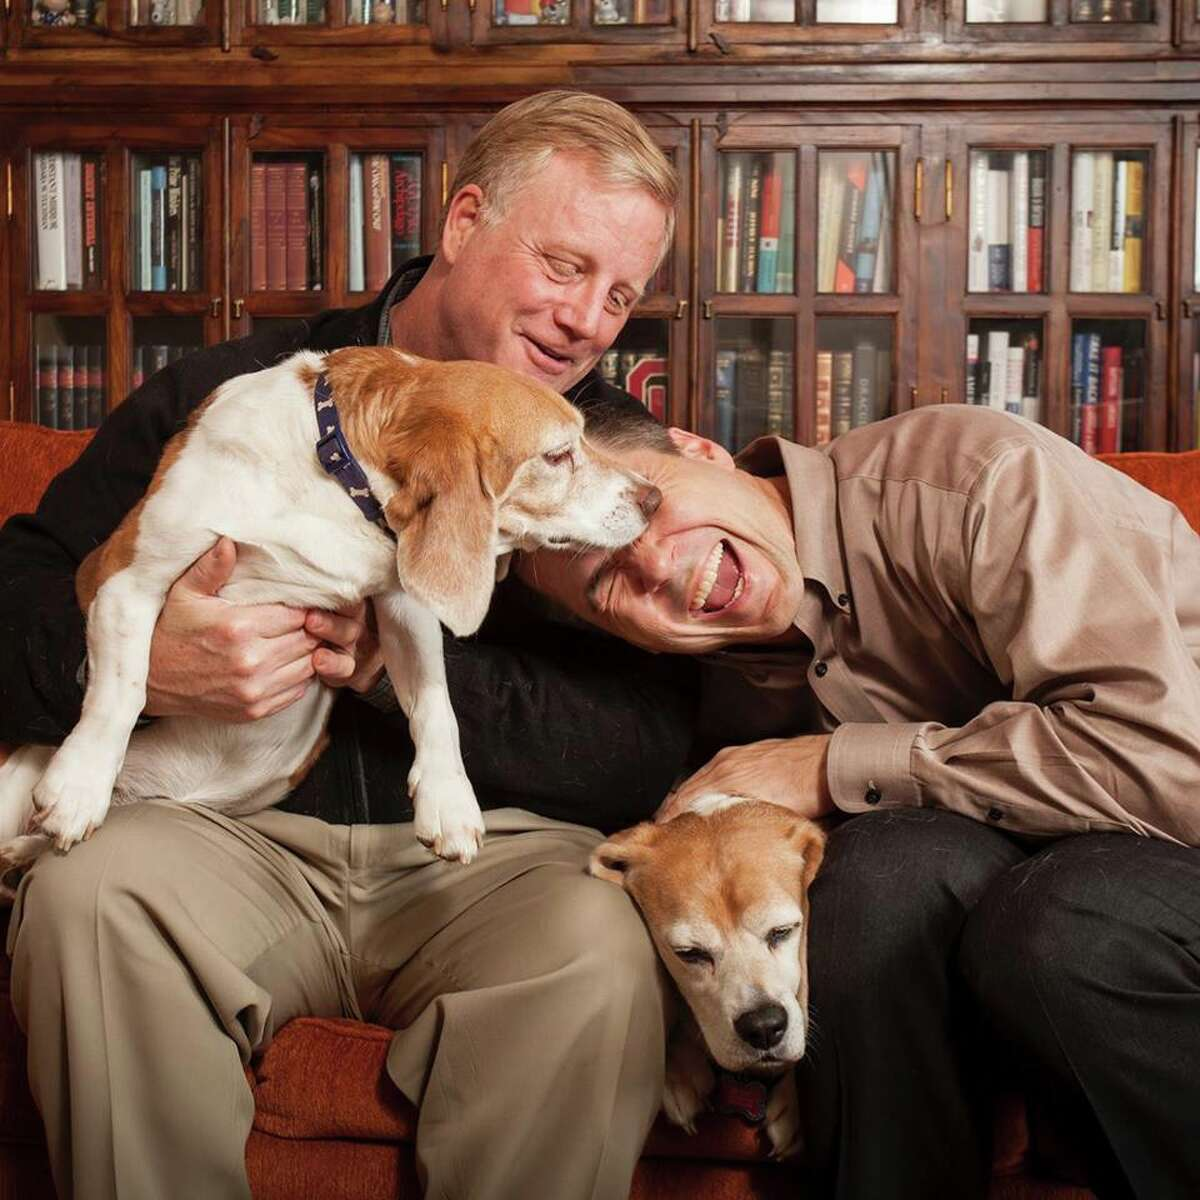 Mark Phariss and Victor Holmes, two of the four plaintiffs in the case challenging Texas' gay marriage ban, play with their dogs in their Texas home.